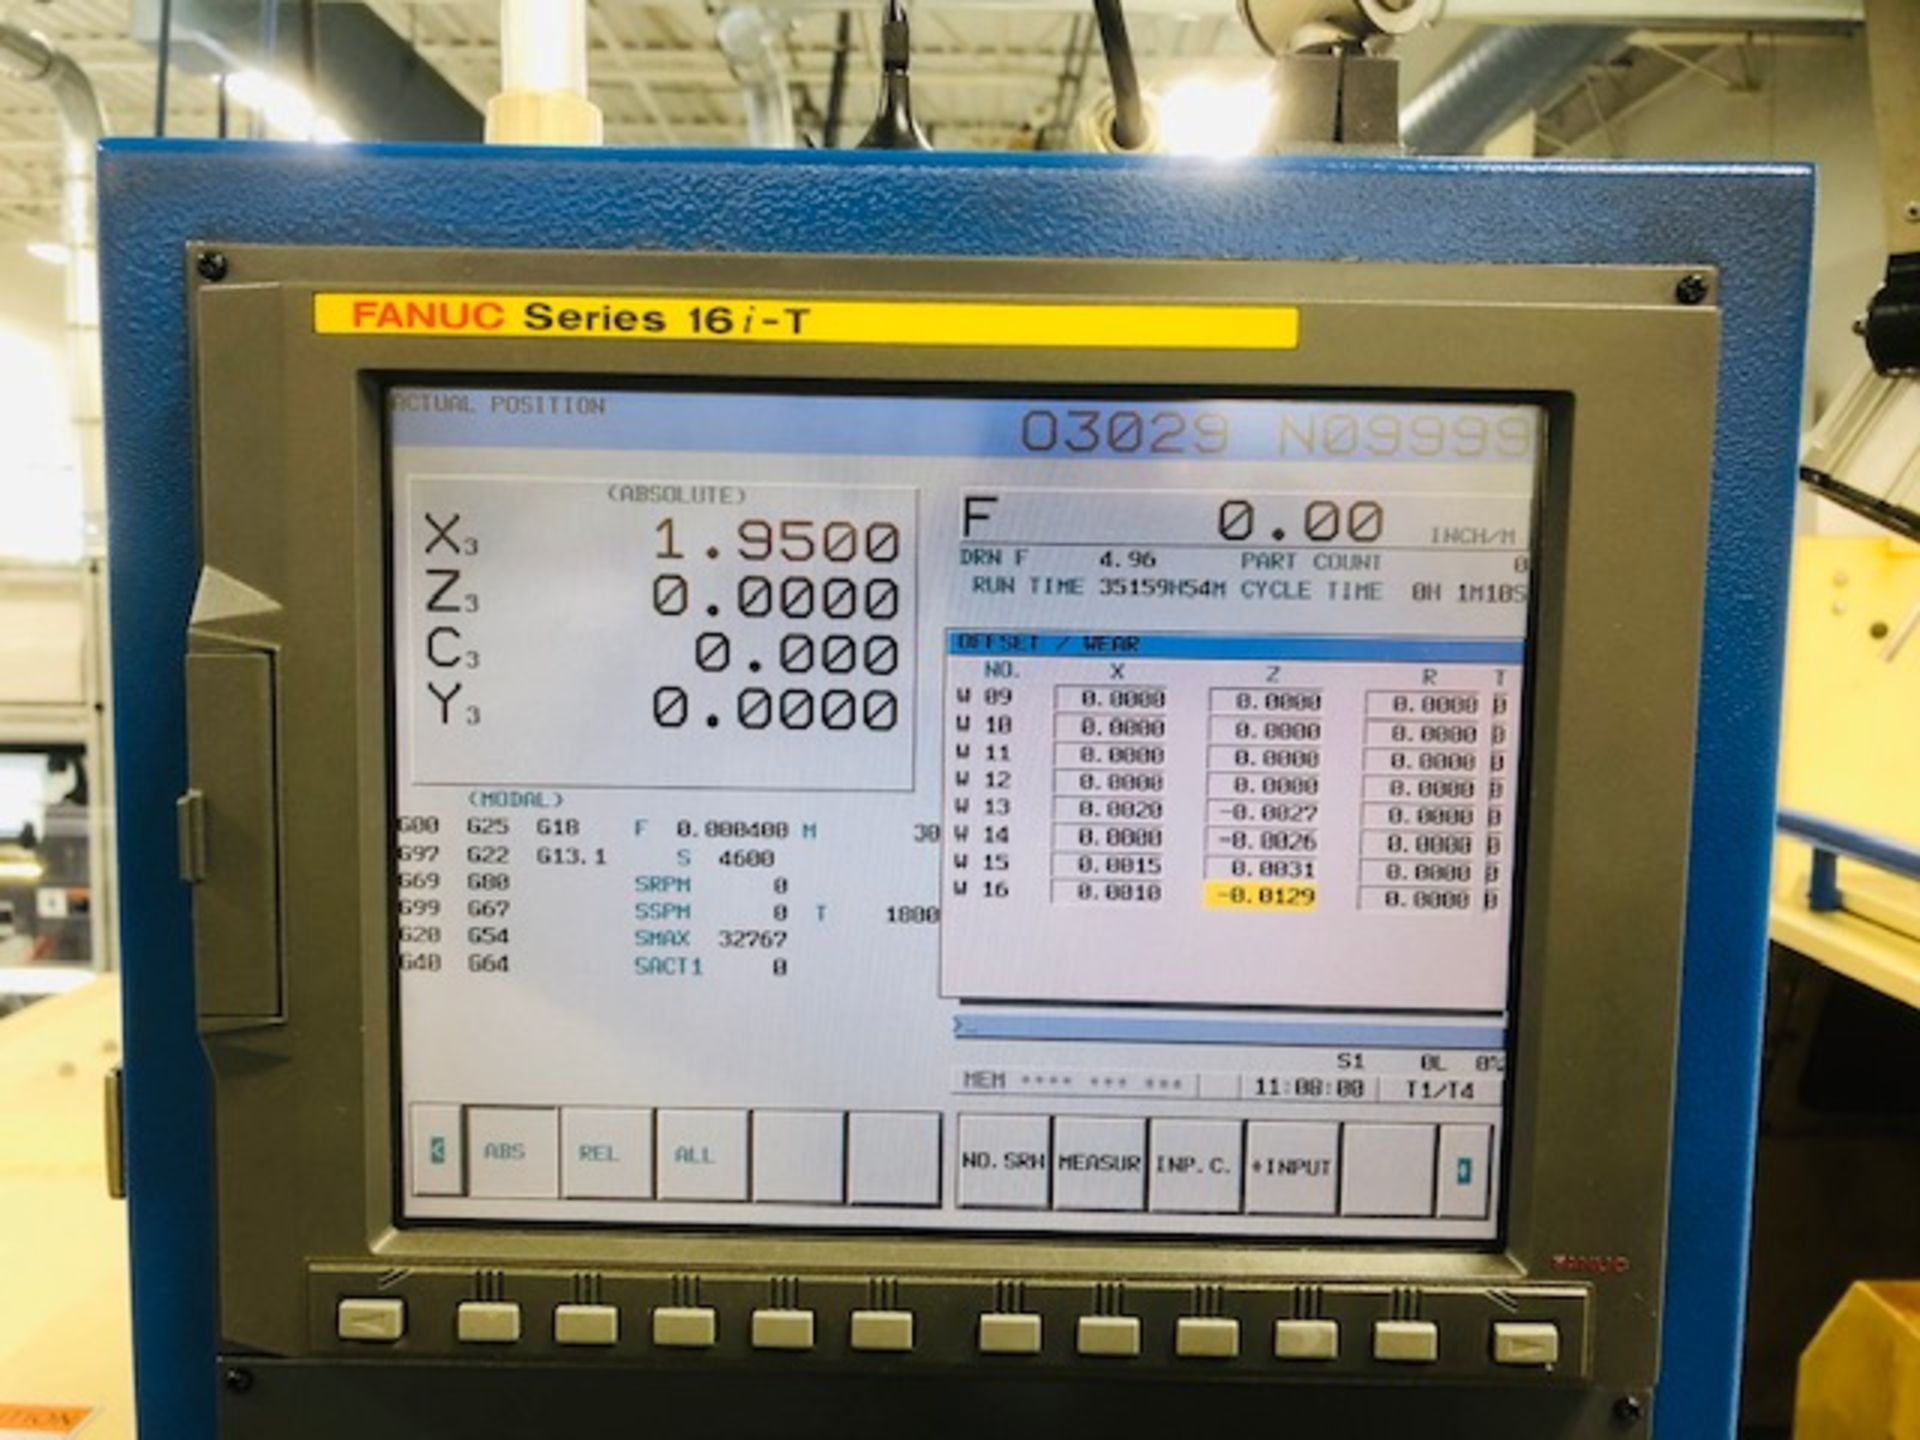 Lot 40 - 2007 TSUGAMI Swiss Type Automatic Screw Machine Model BW12-III CNC 7 Axis, Fanuc Ser. 16i-T Cont.